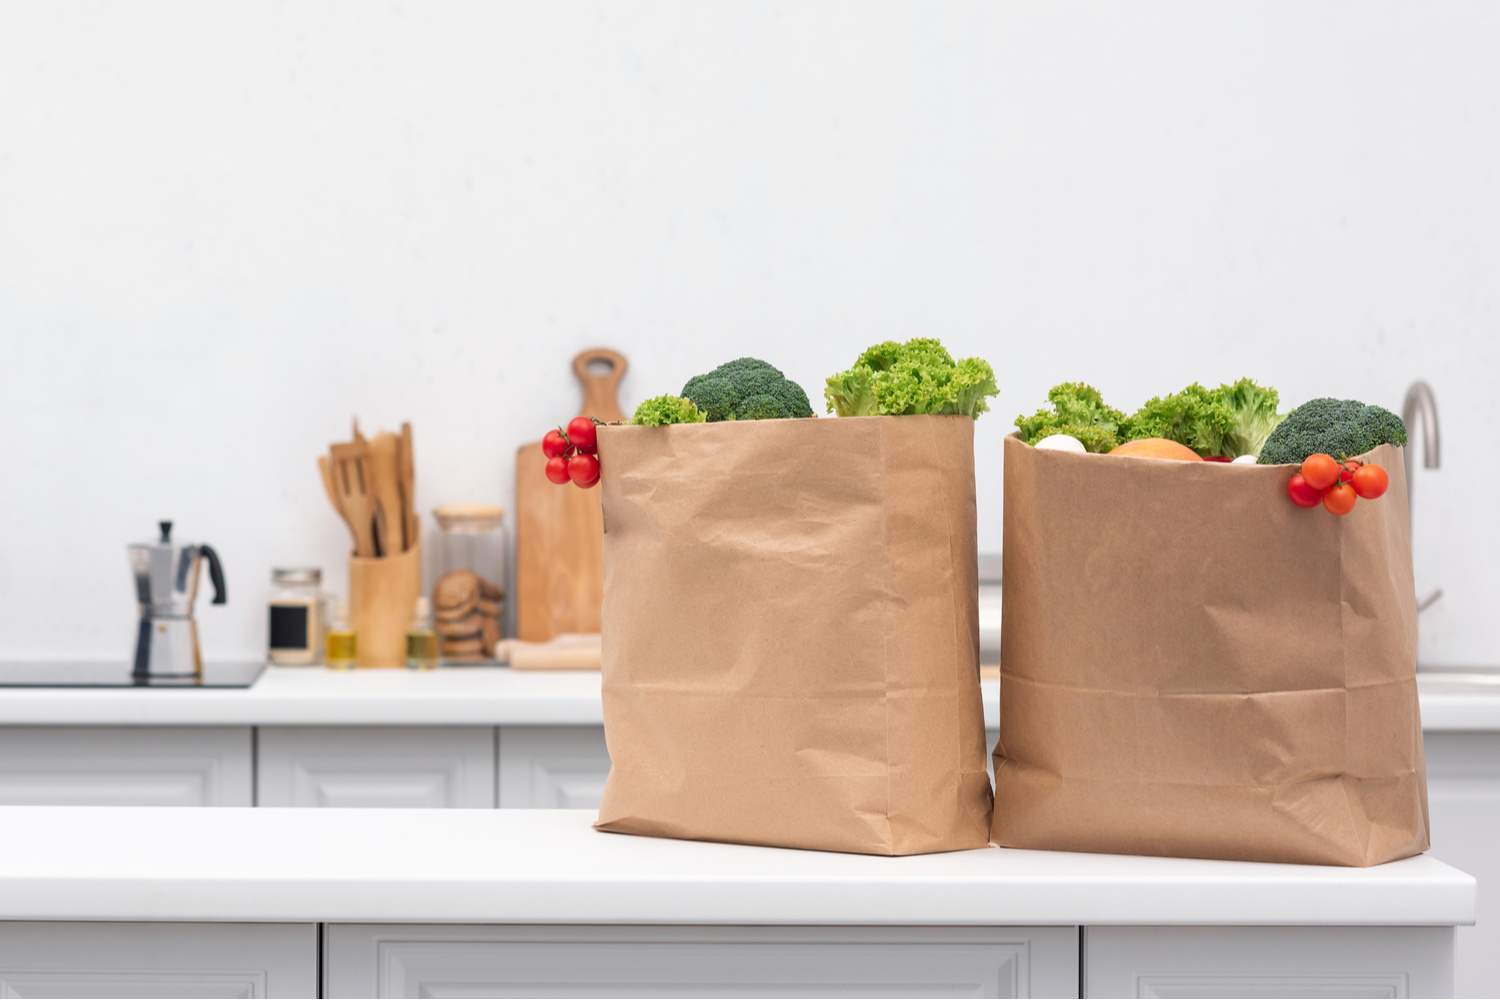 groceries on a kitchen counter. How to hide small appliances and kitchen gadgets